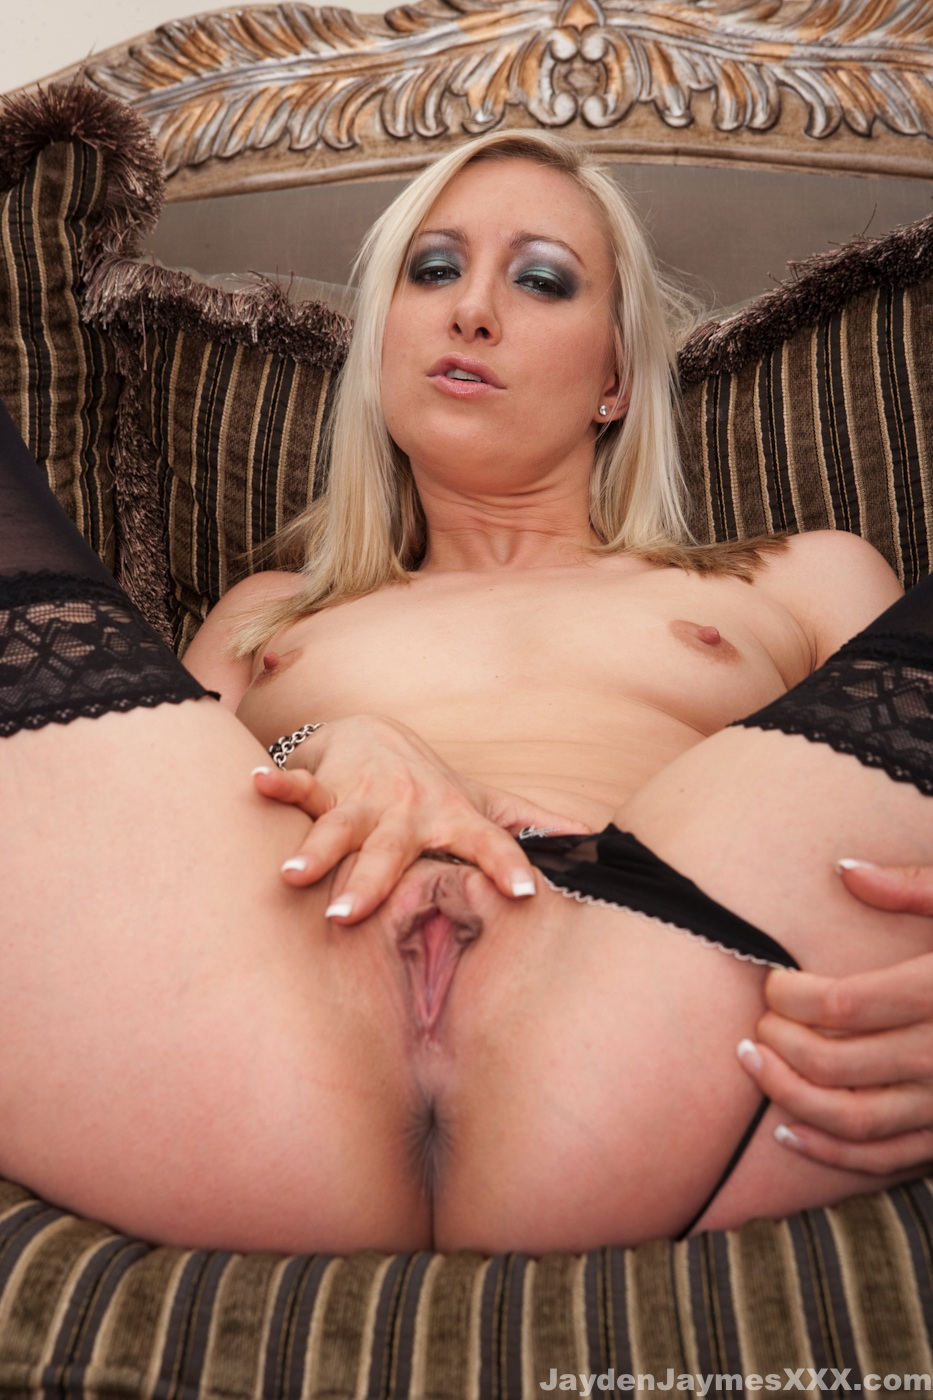 Aneros Mania Porn Videos orgasms xvideos and video orgasms up inside her photos